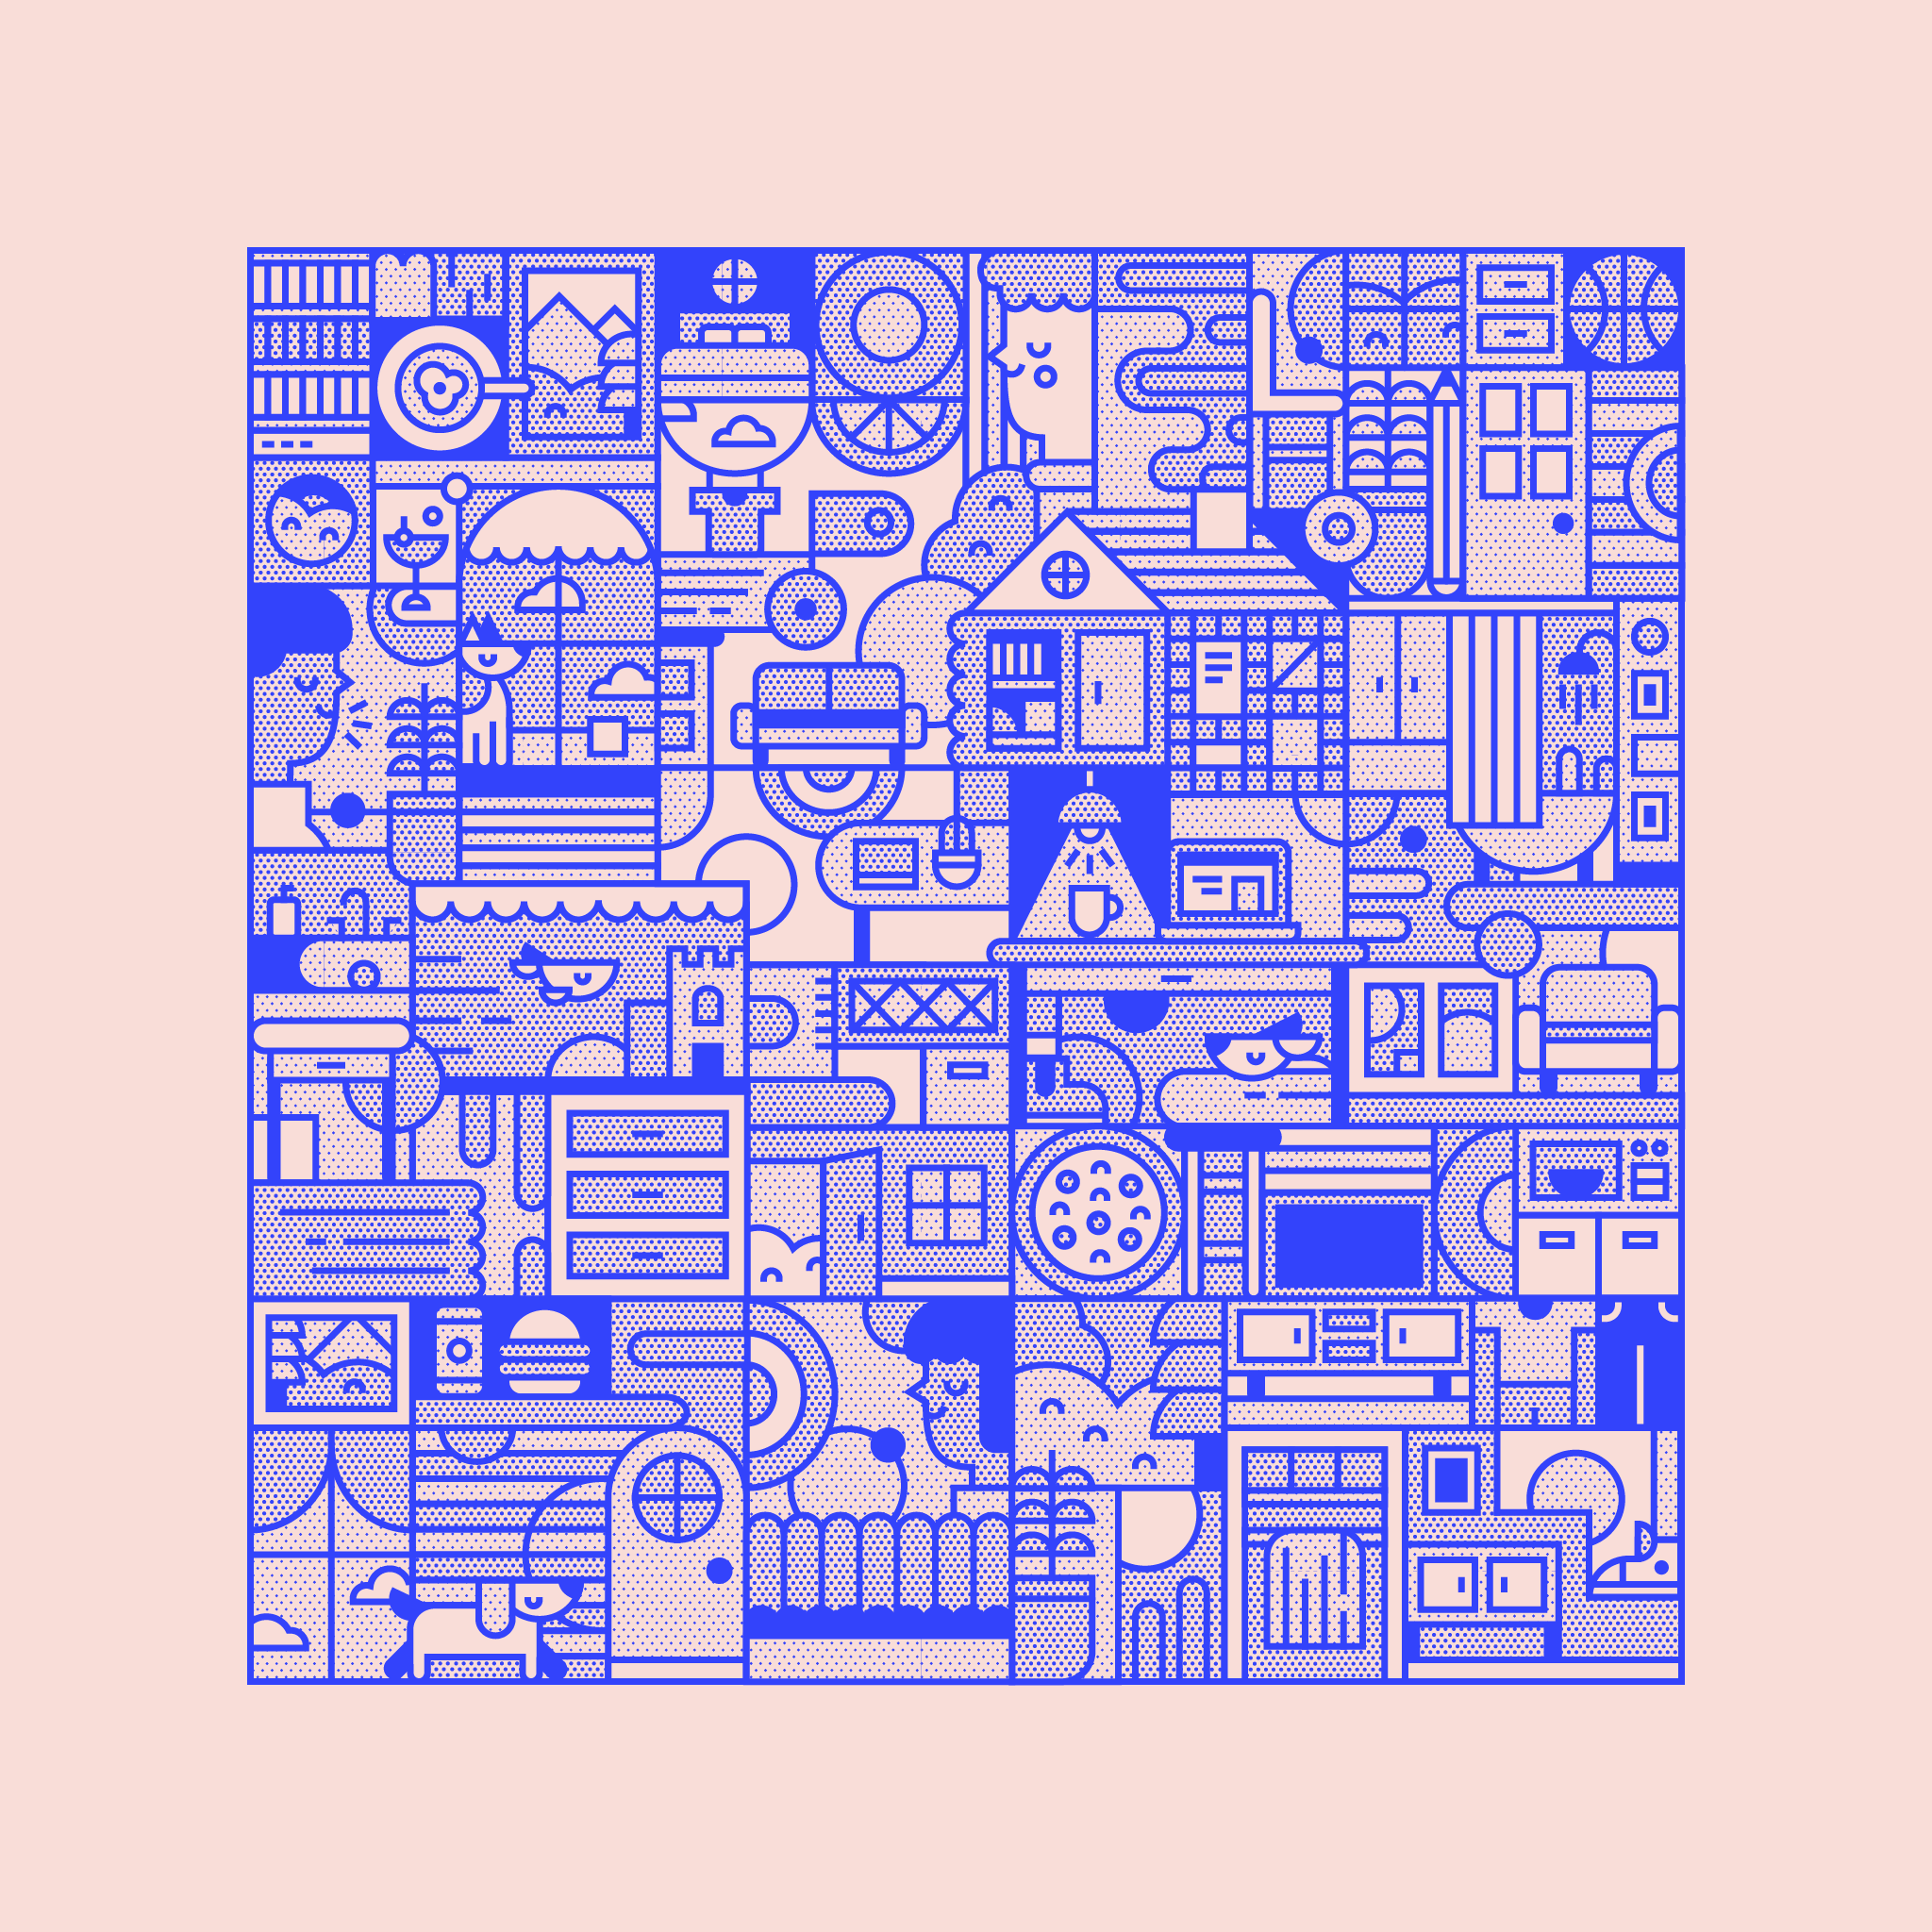 cad_abstract-02.png